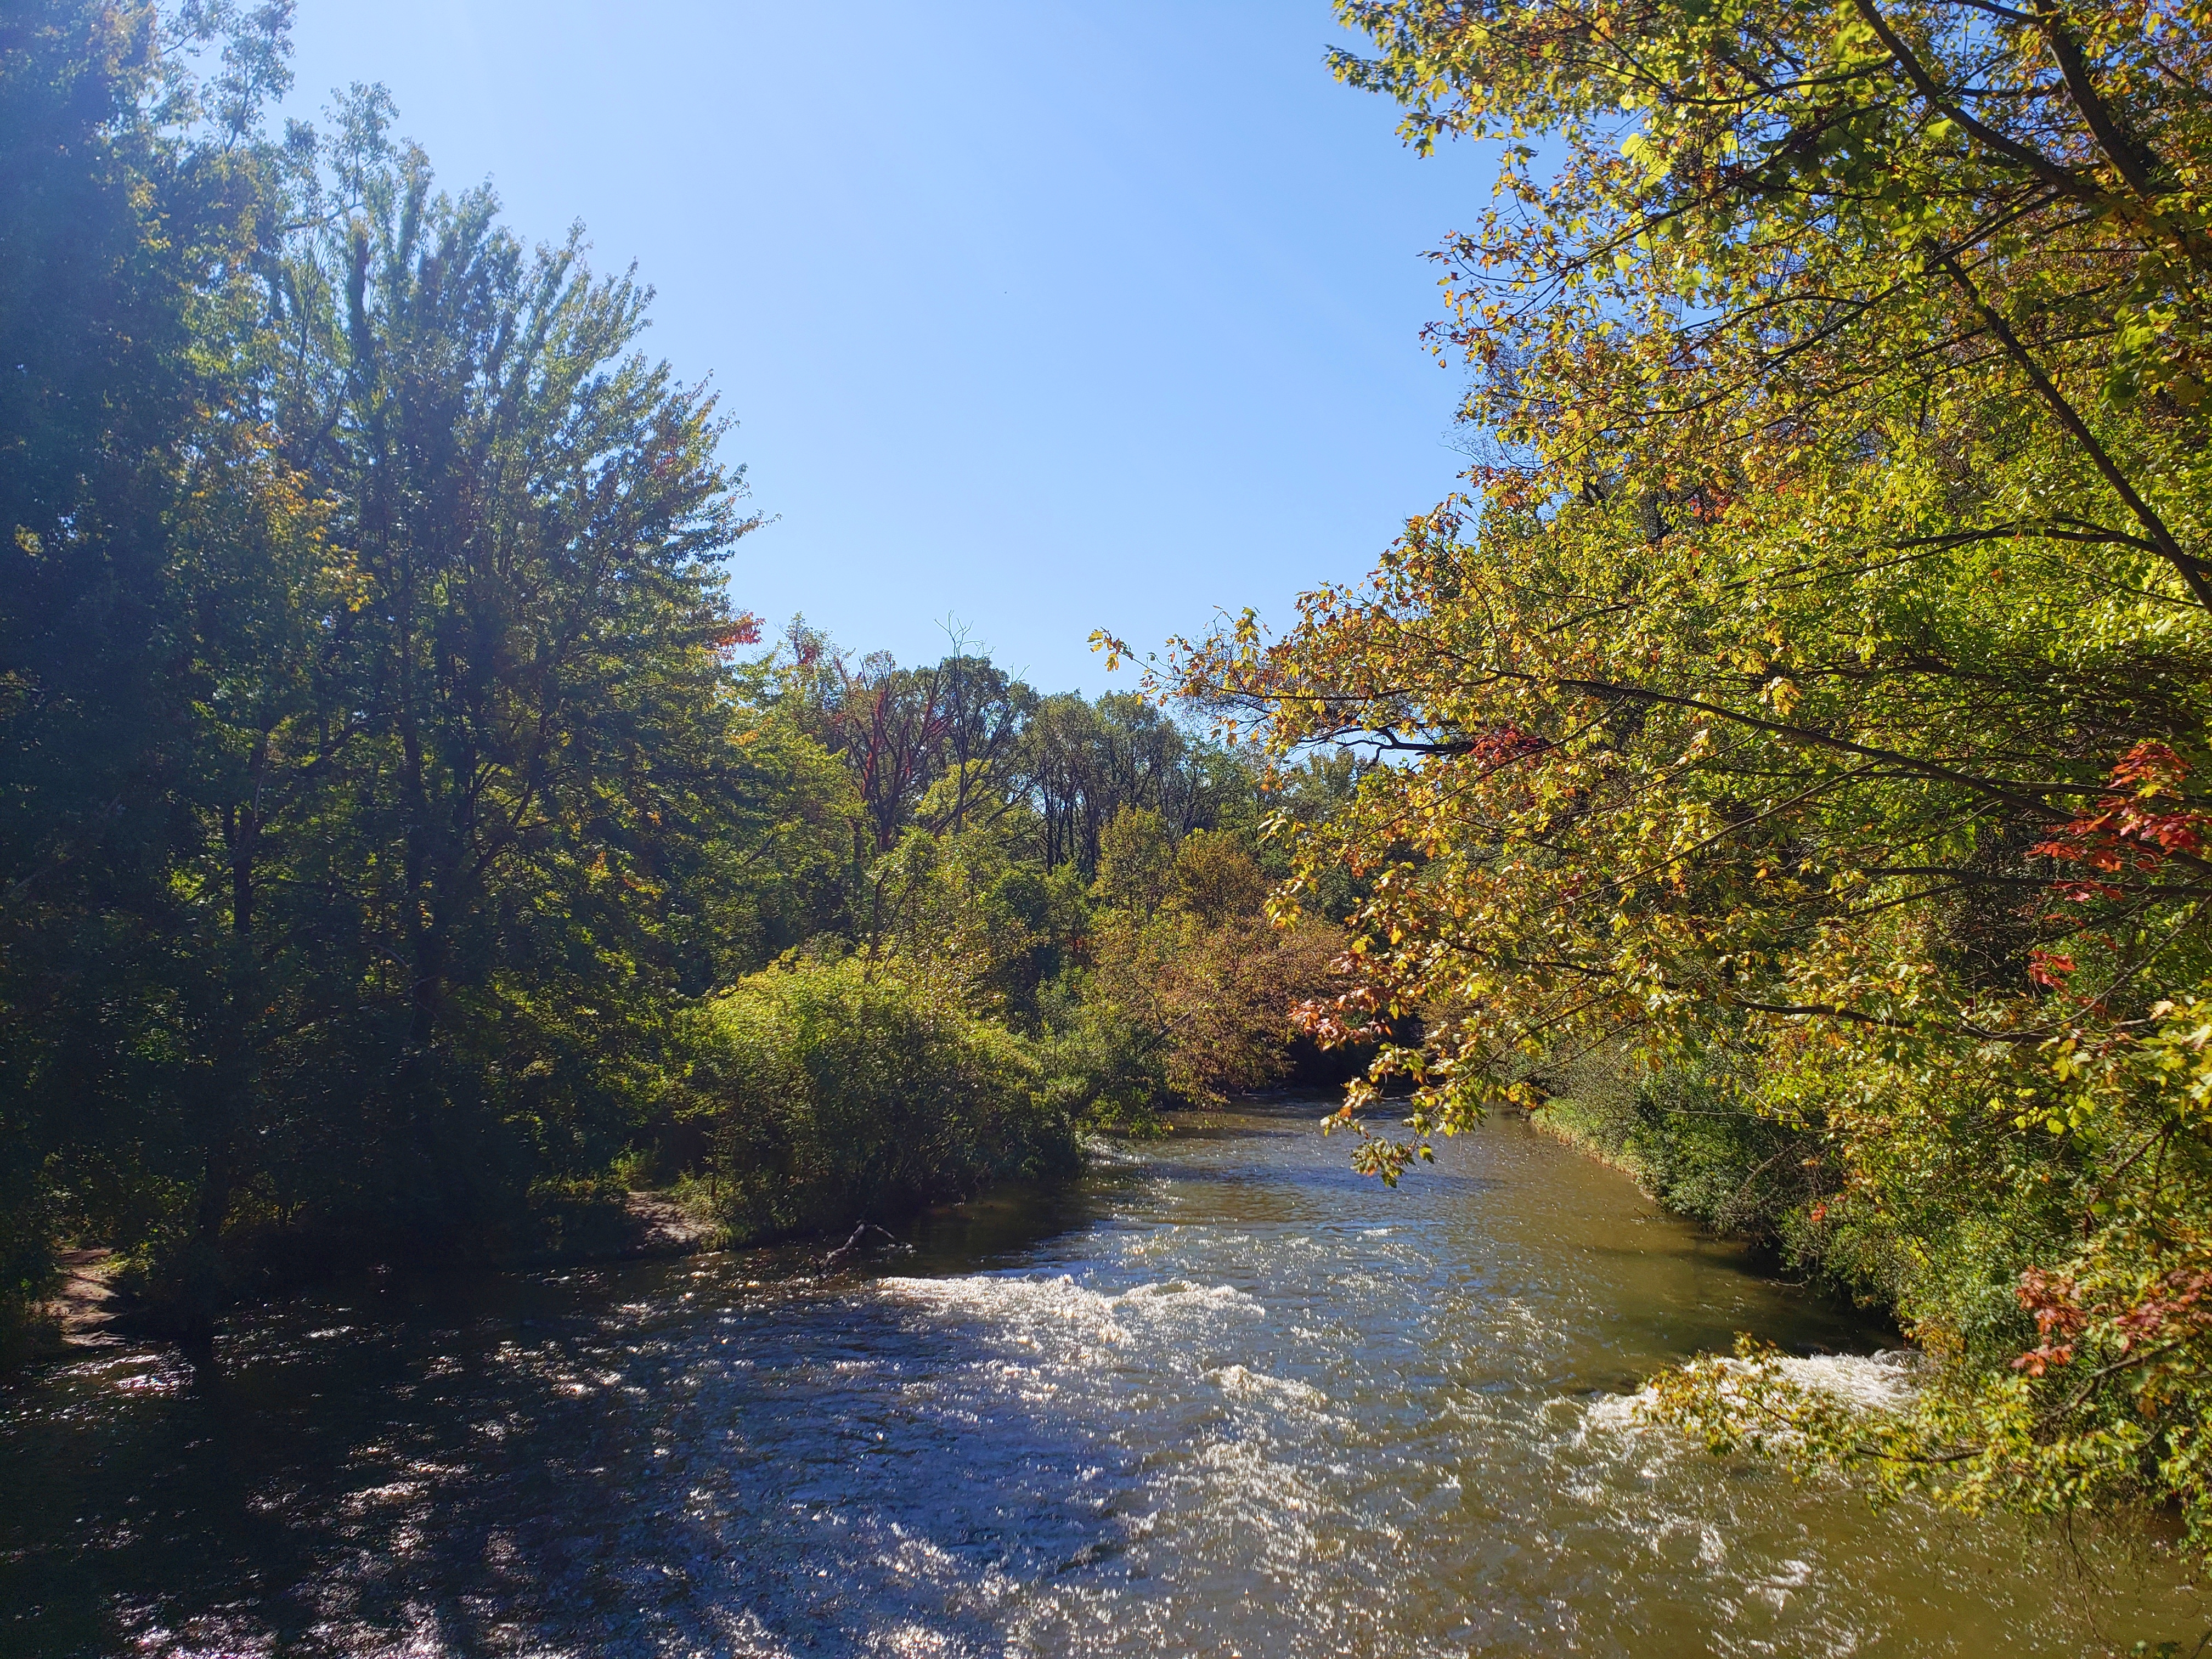 A view of the Clinton River as seen from the Clinton River Trail